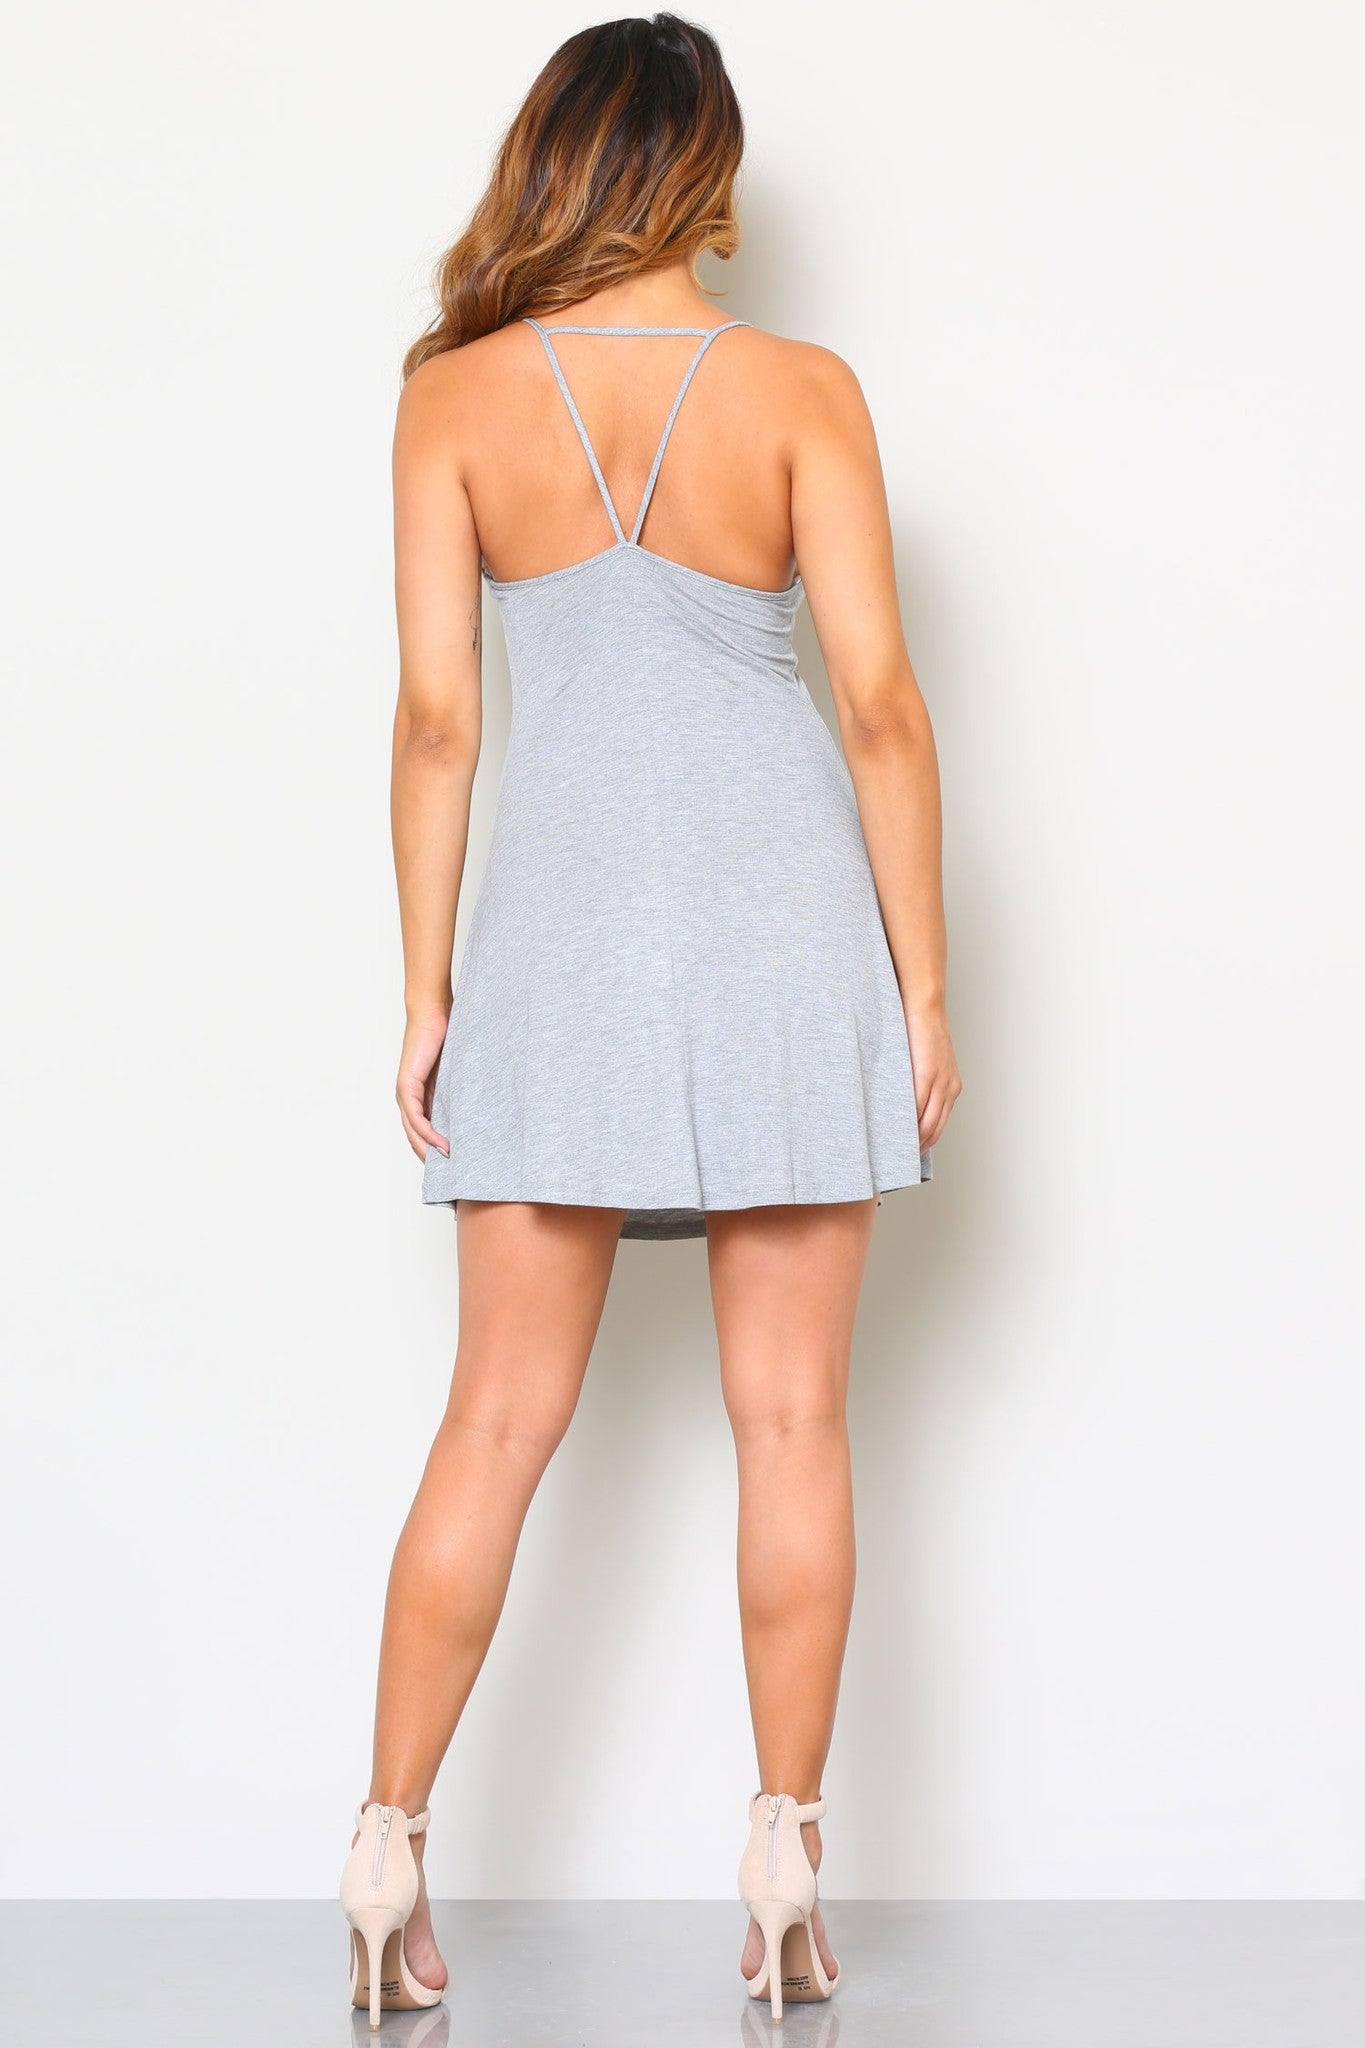 RILEY DRESS - Glam Envy - 3